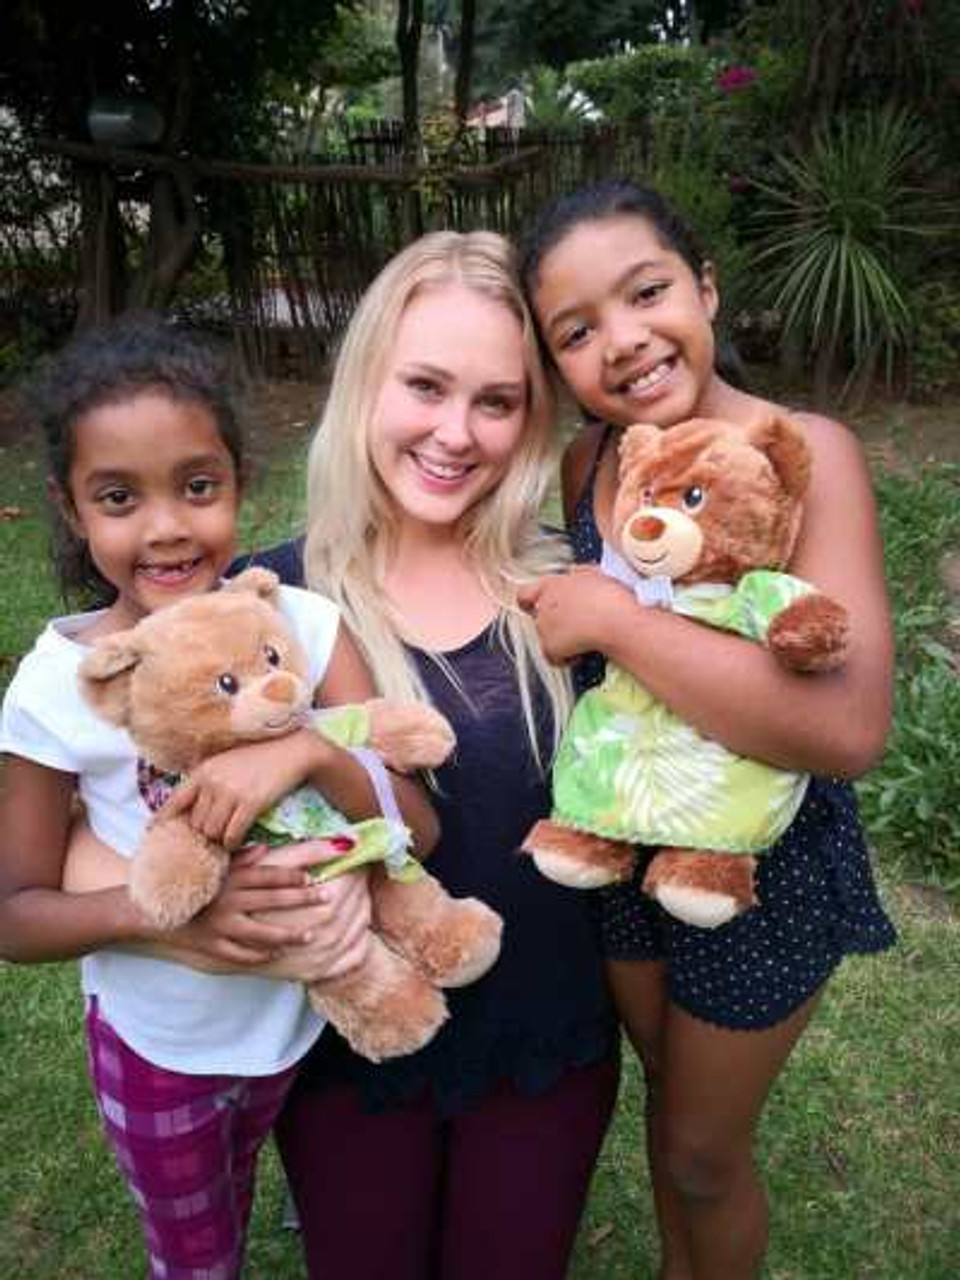 The girls and their counselor with the teddy bears.